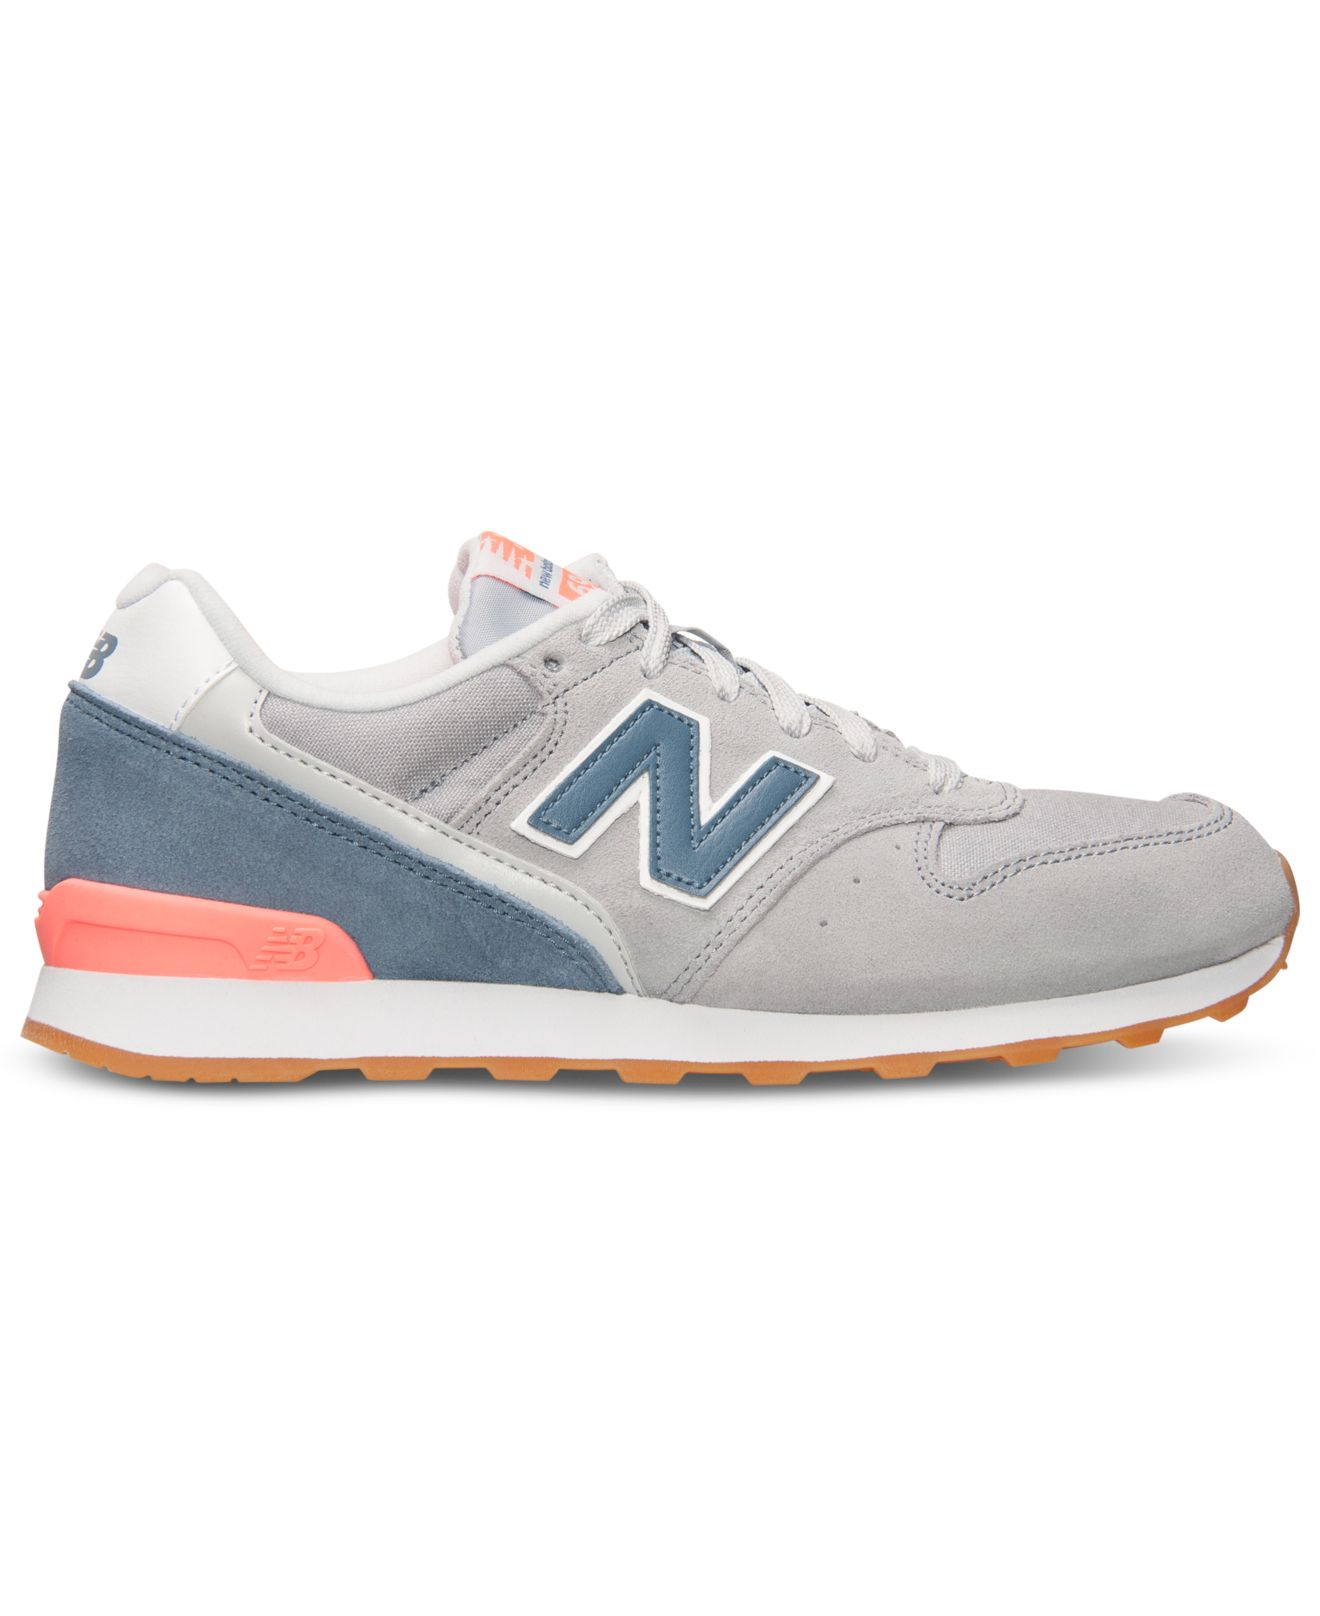 6efc7667328f Lyst - New Balance Women s 620 Capsule Casual Sneakers From Finish ...